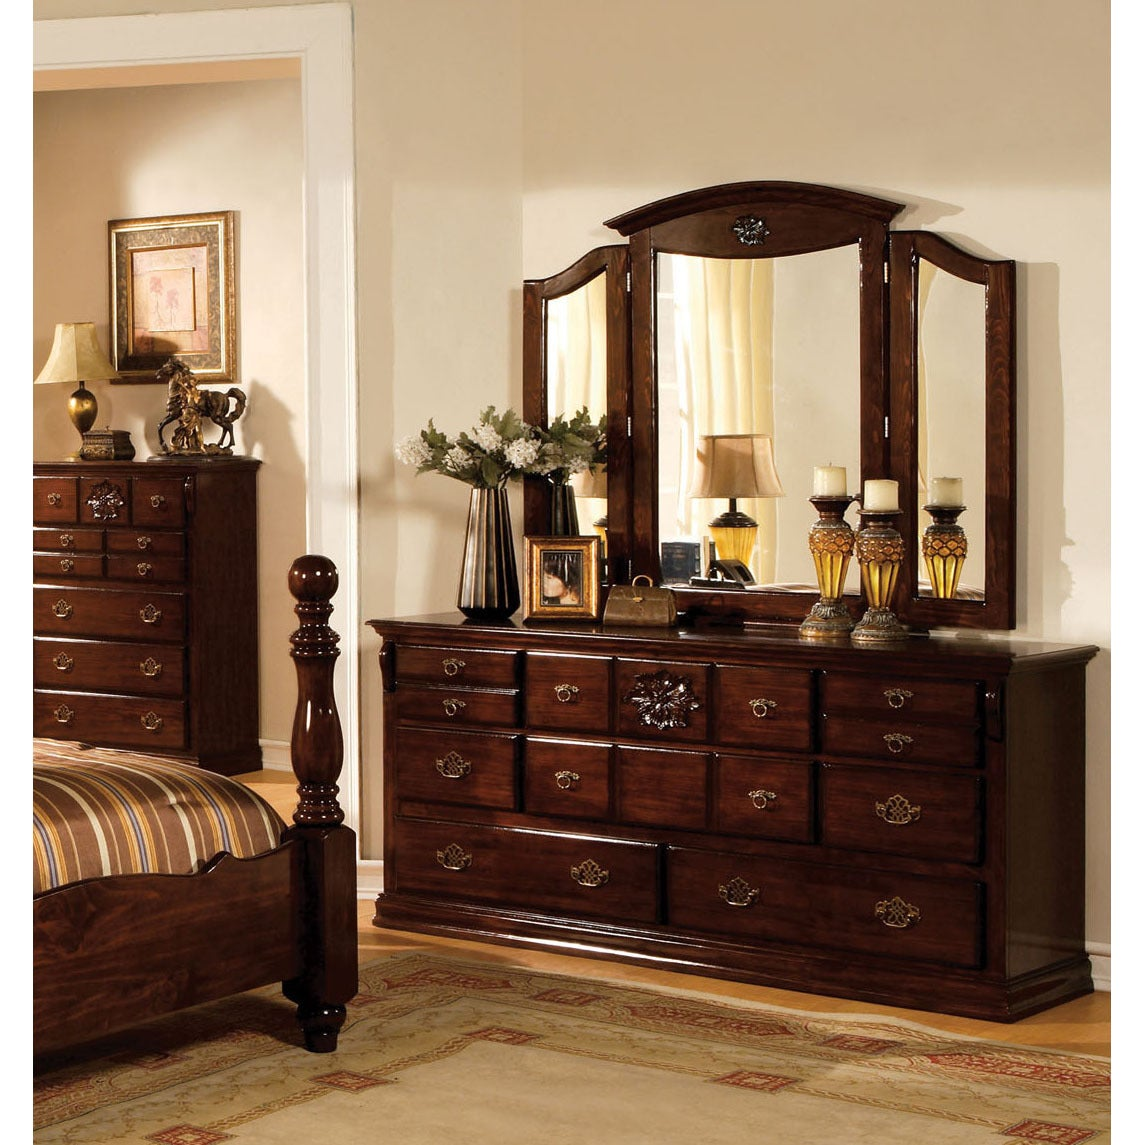 subcategory with bedroom dark brown at discounters furniture our category windville sets dresser mirror sale categoryid showsorted for cheap